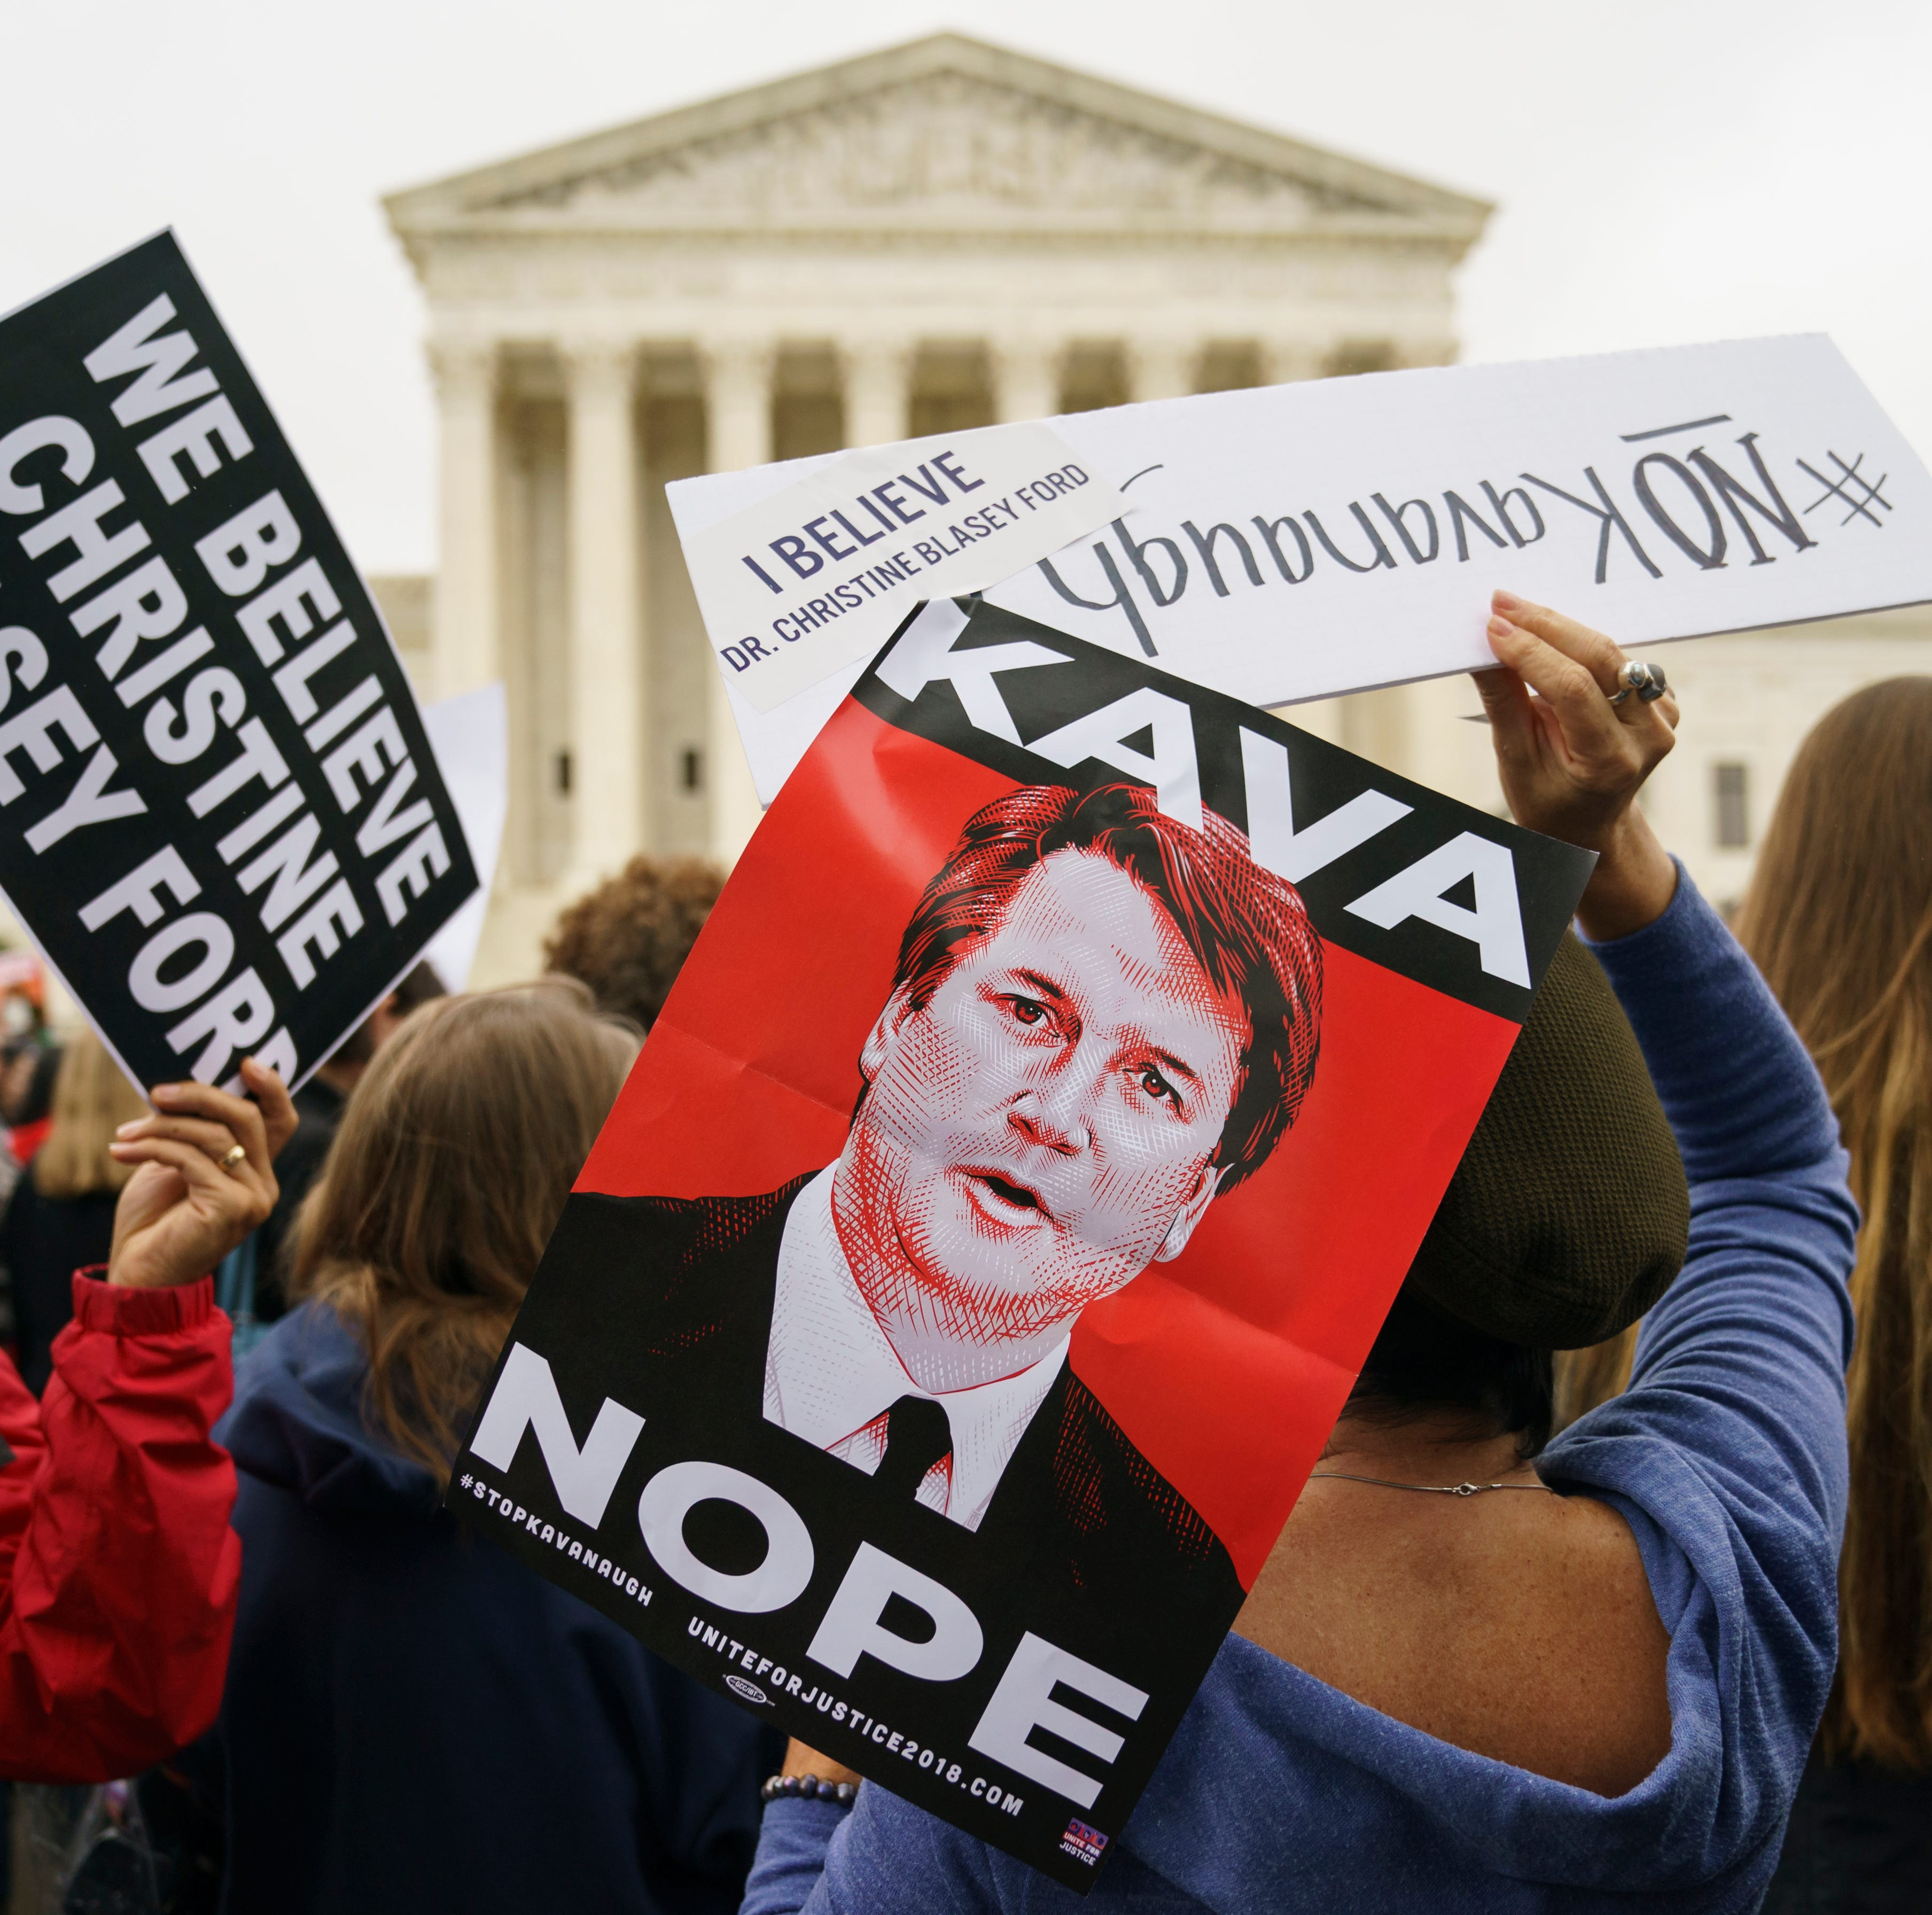 In Ford v. Kavanaugh, truth-seeking is a casualty